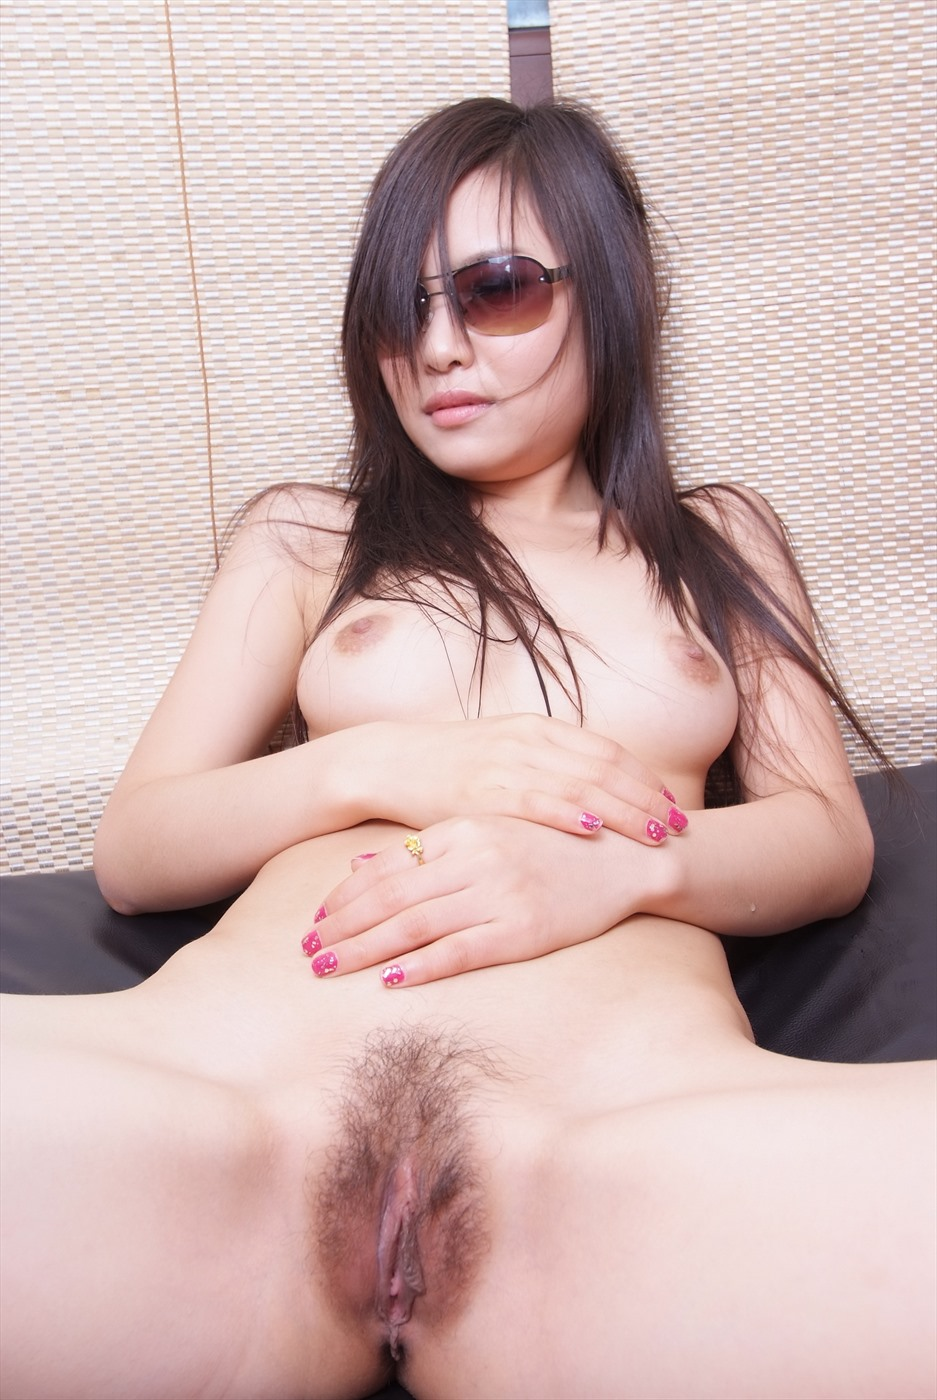 girls Chinese vagina beautiful